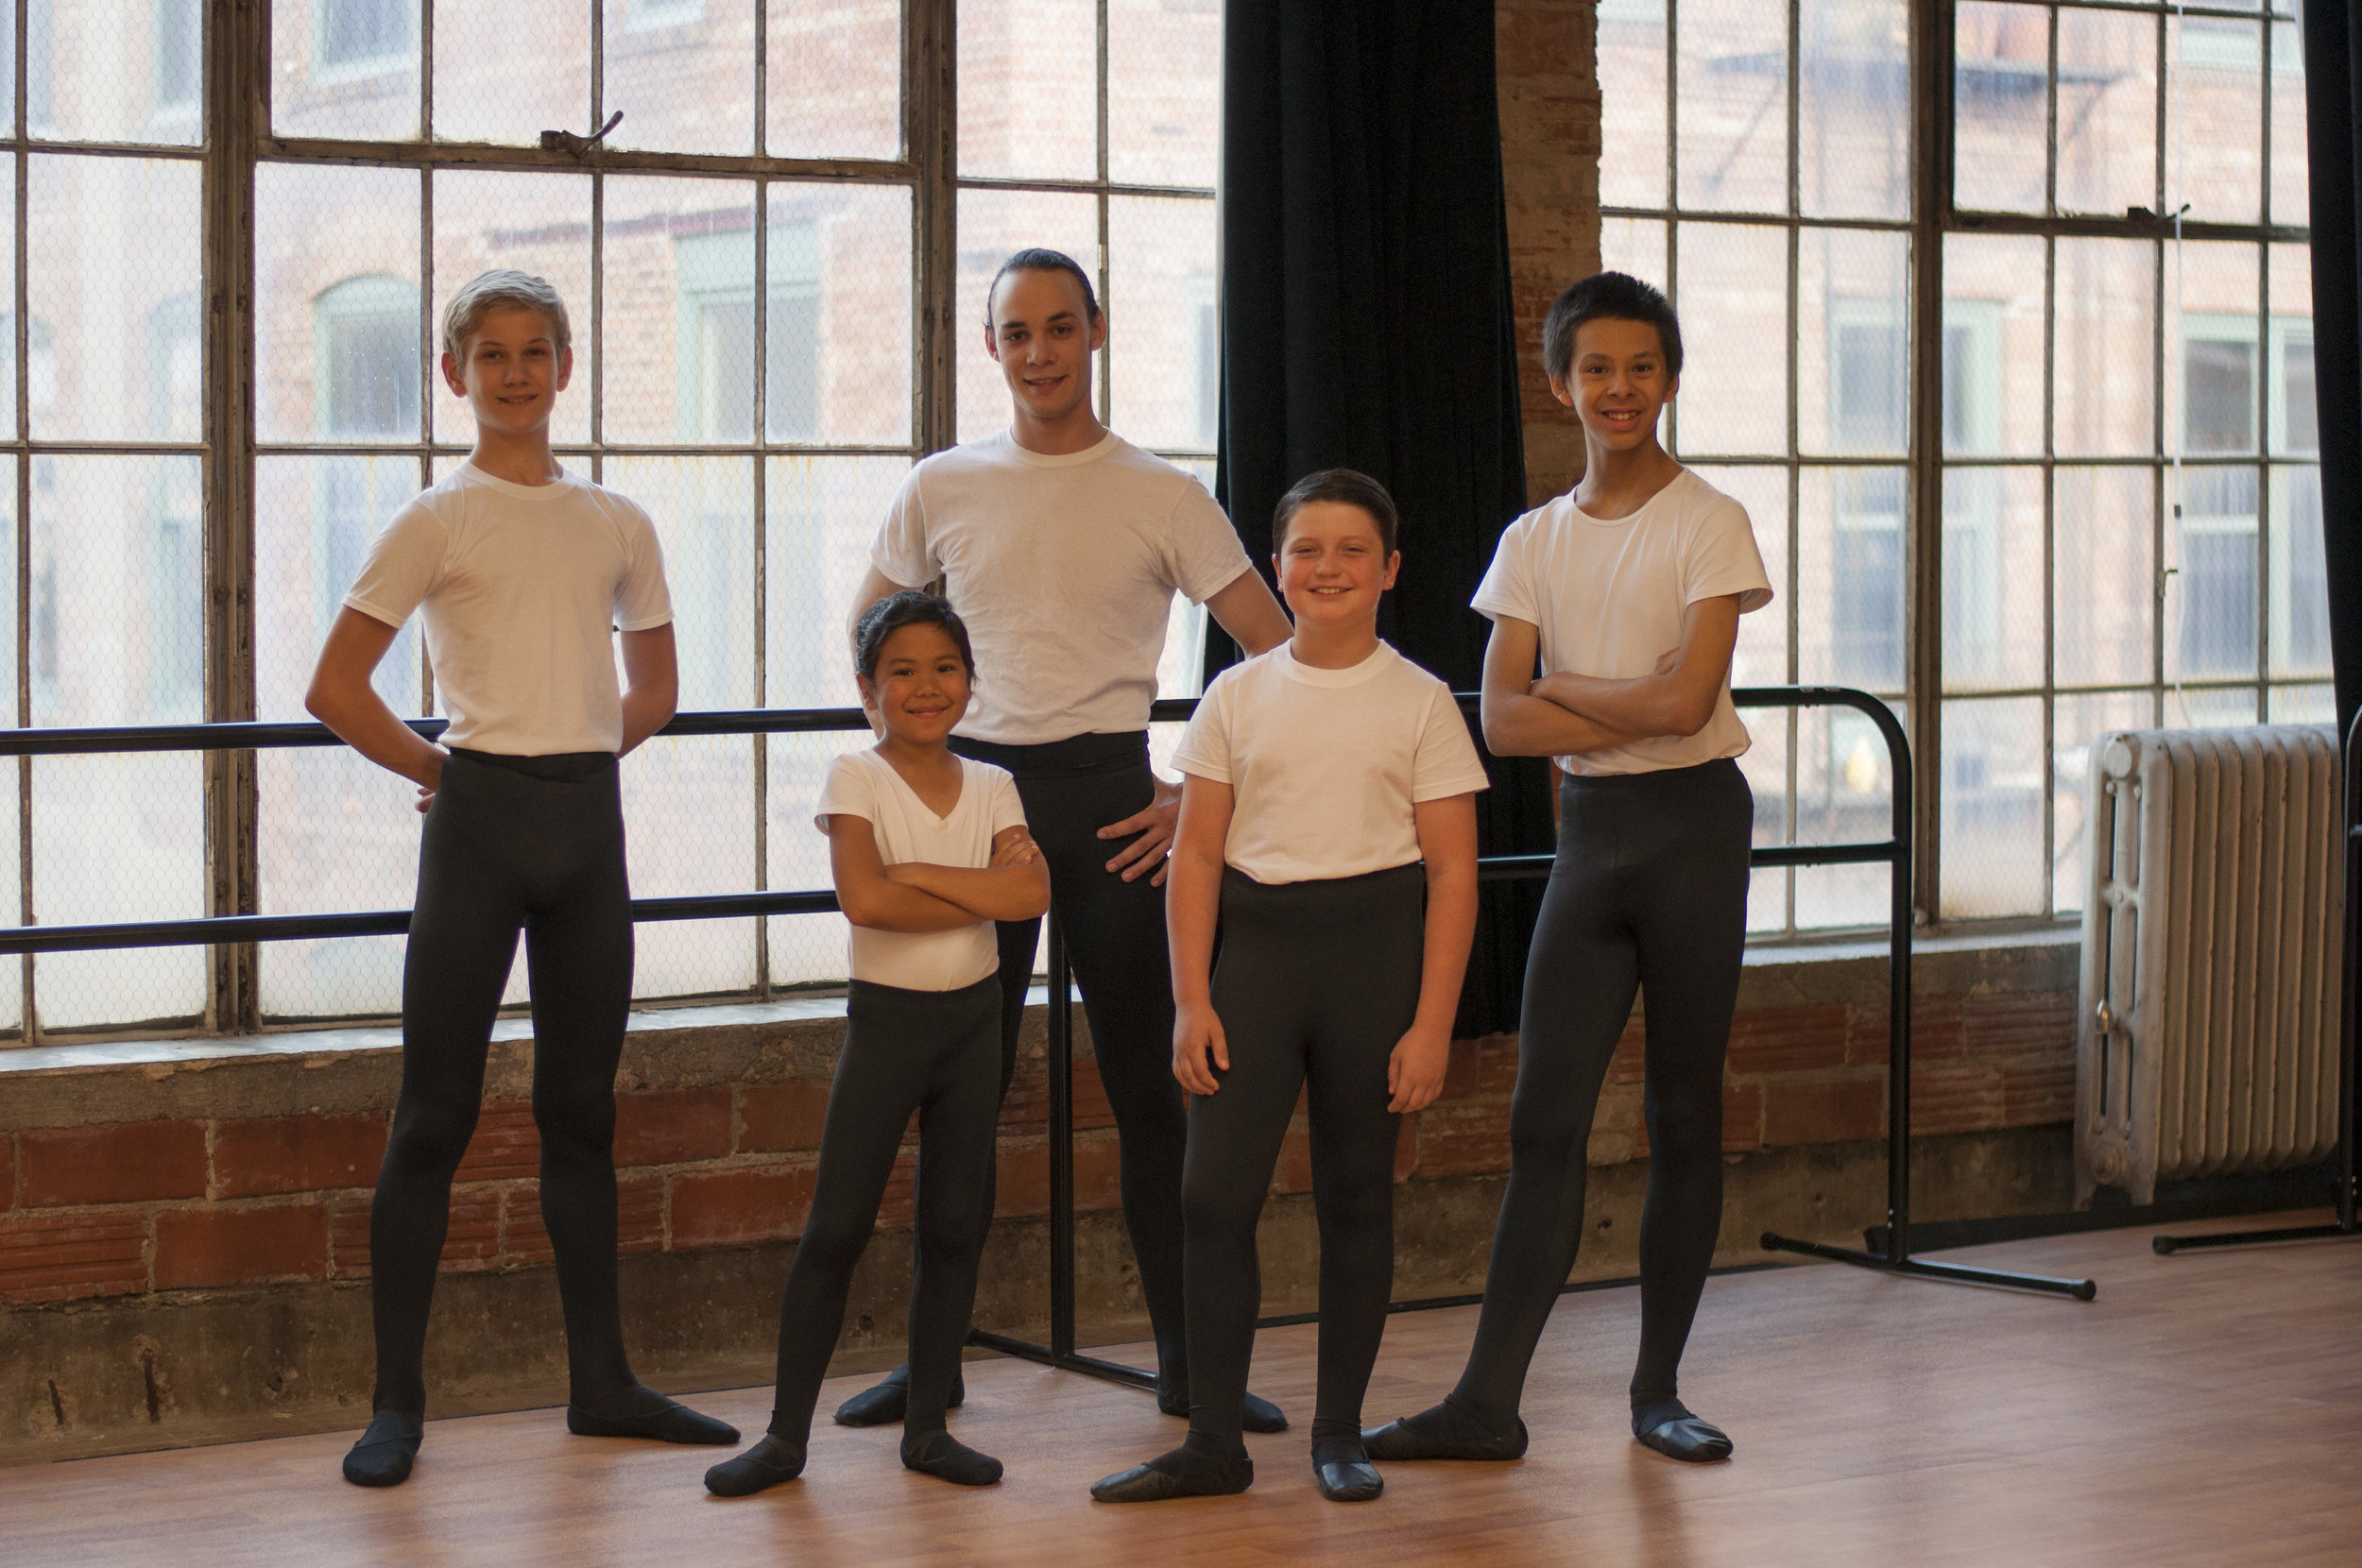 Boys ballet Program - Boys 8 years of age and older interested in enrolling at Dance Gallery will be given the opportunity to participate in Dance Gallery's Boys Ballet Program. Dance Gallery firmly believes in training boys in proper ballet technique. Ballet teaches self-discipline, self-motivation and self-awareness. If this is something you are interested in please contact us at info@dancegallerysd.com so that we can send you additional information regarding the program.